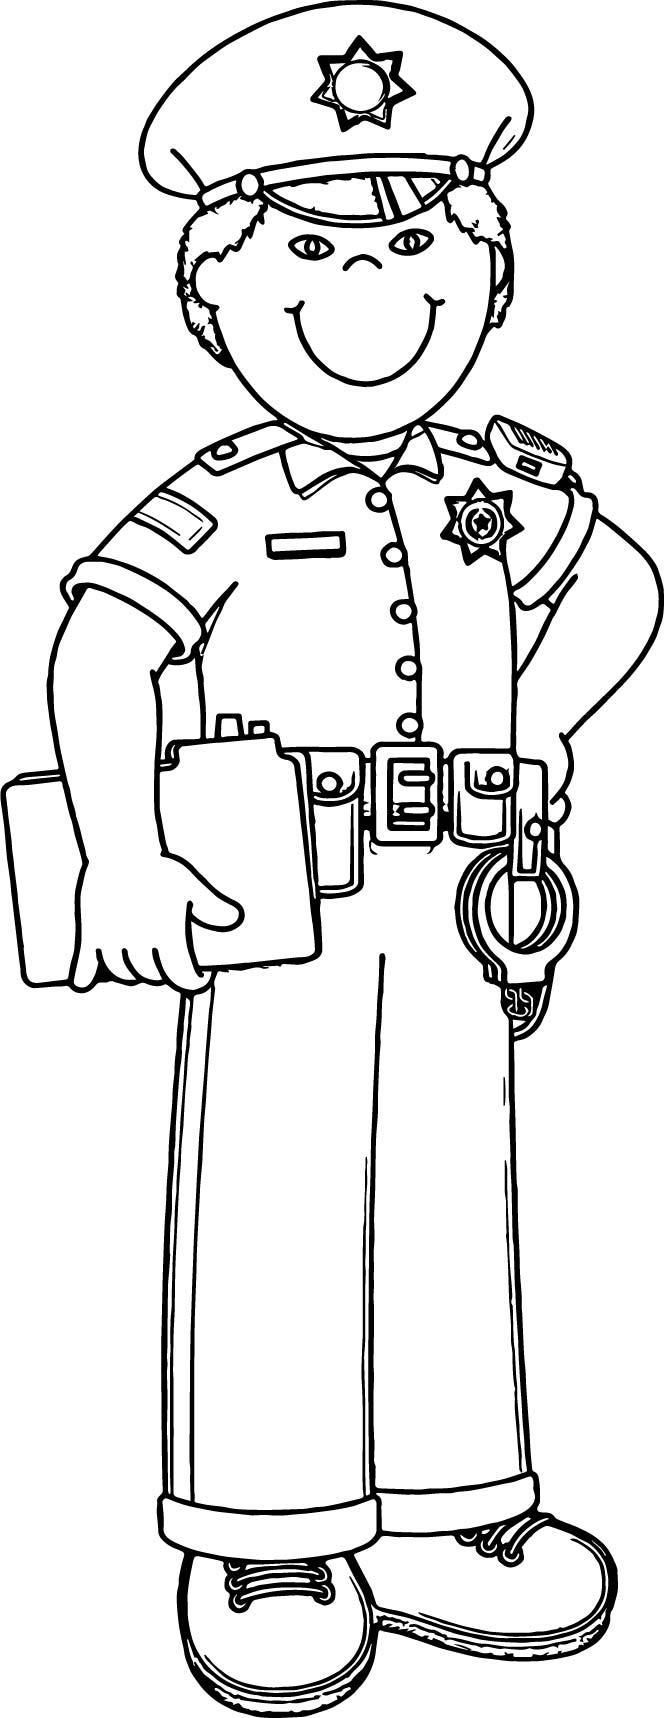 policeman coloring book pages - photo#16